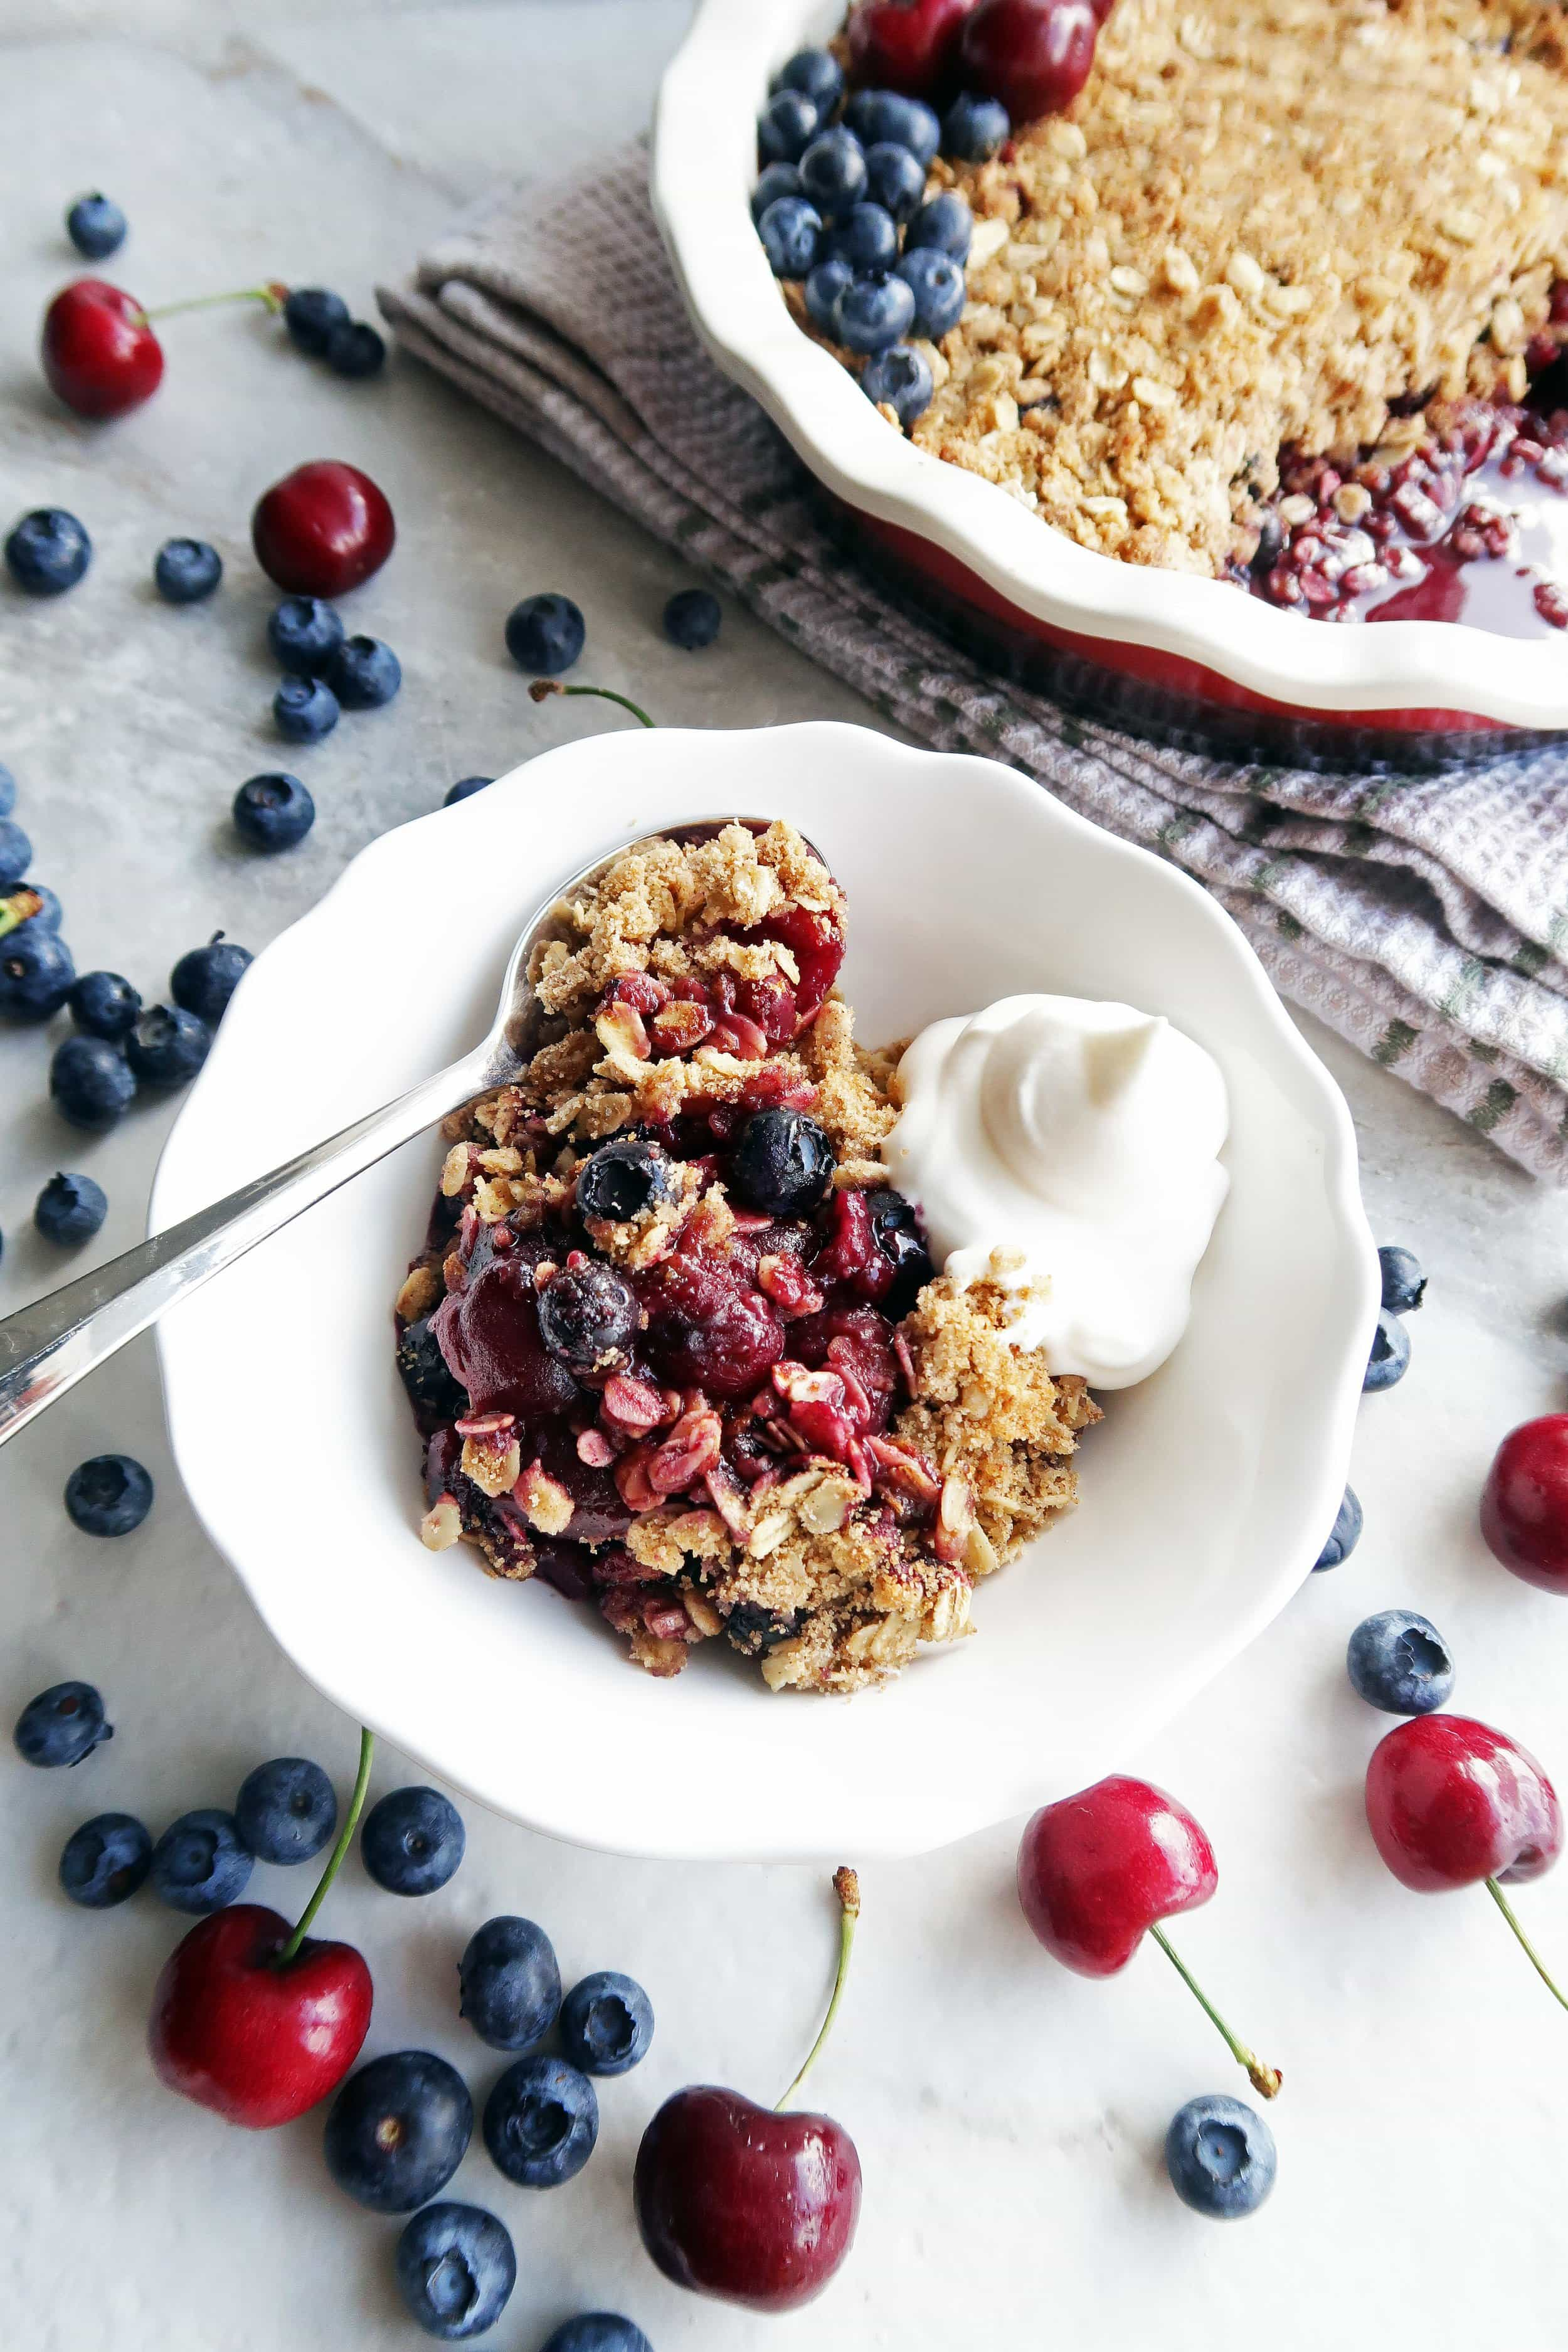 Cherry blueberry oat crisp with cream in a white bowl with a spoon and a pie dish of oat crisp in the background.